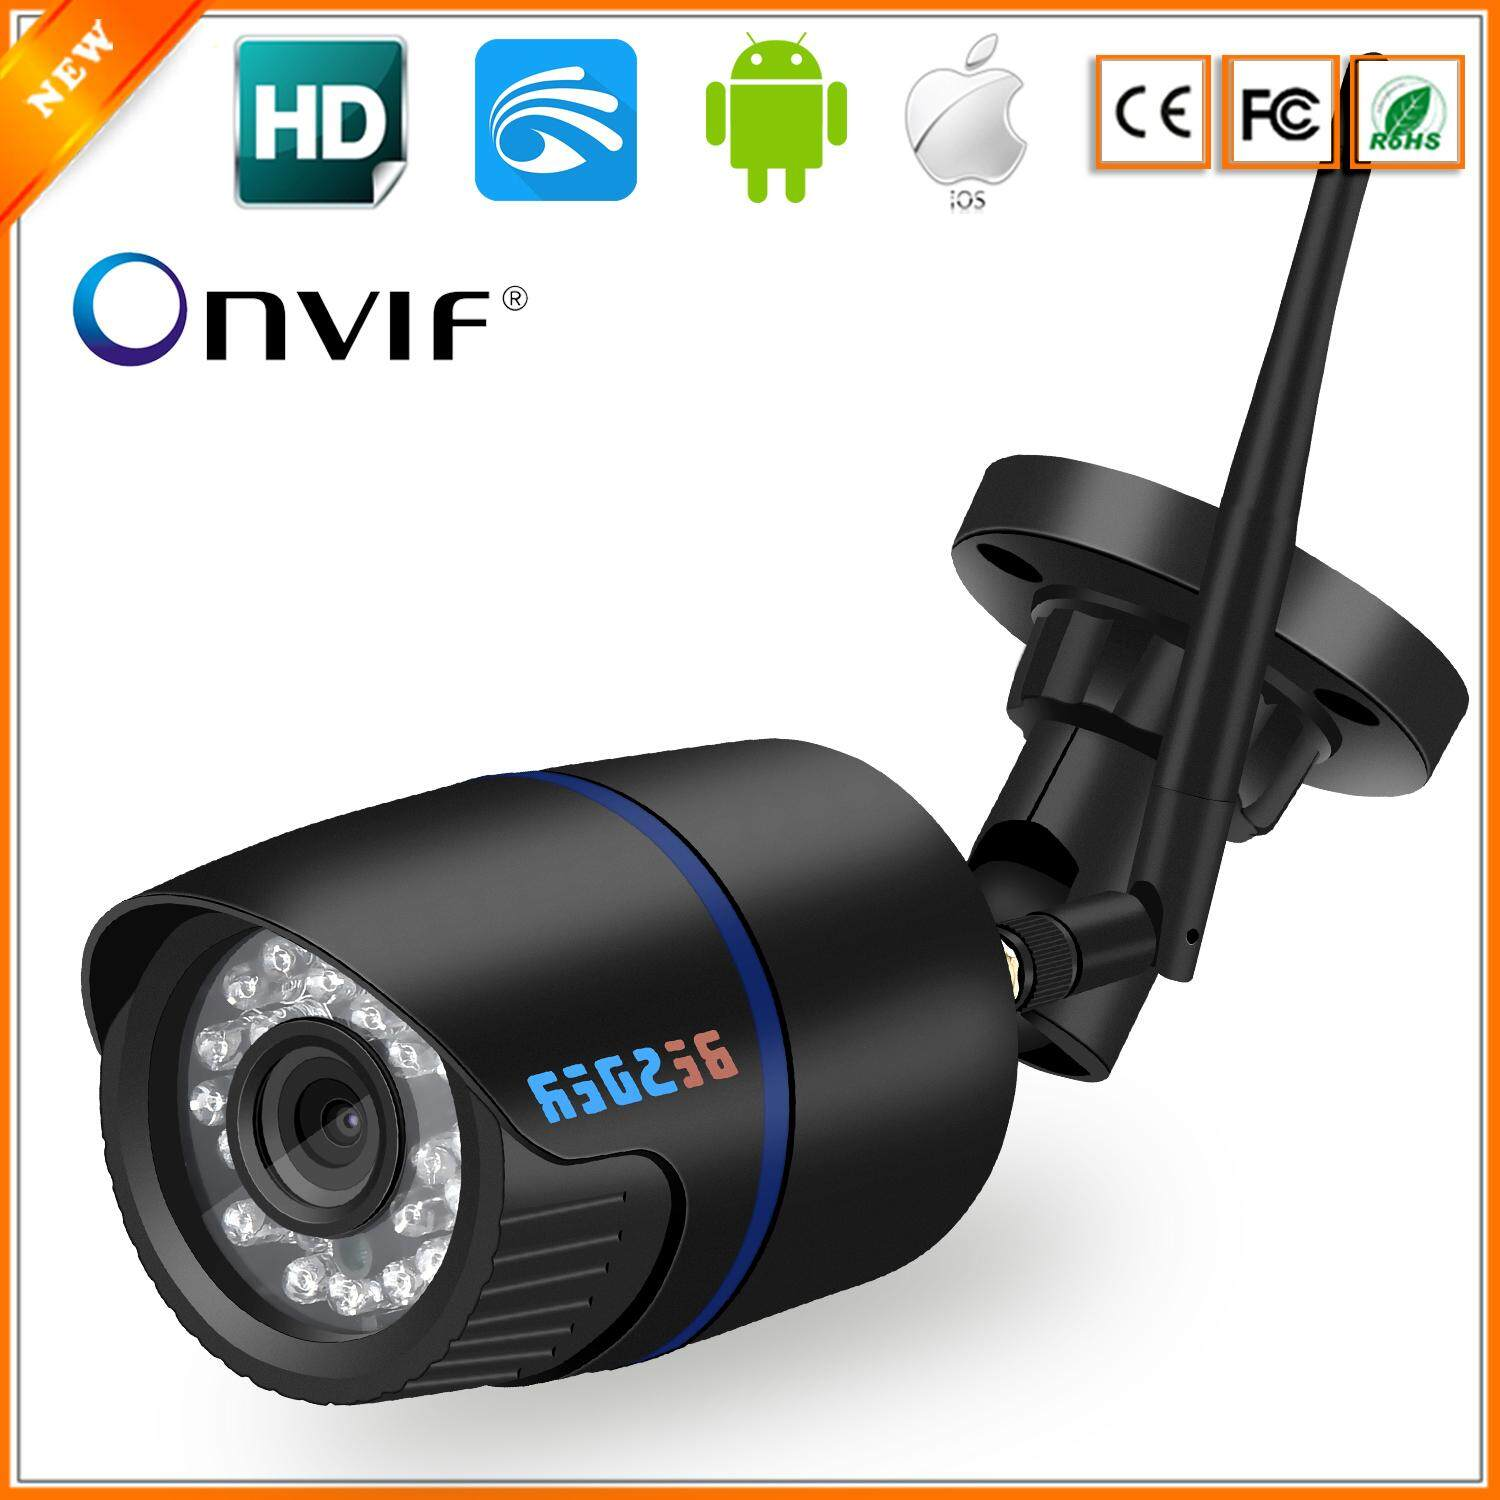 BESDER Yoosee IP Camera Wifi 1080P 960P 720P ONVIF Wireless Wired P2P CCTV Bullet Outdoor Camera With MiscroSD Card Slot Max 64G